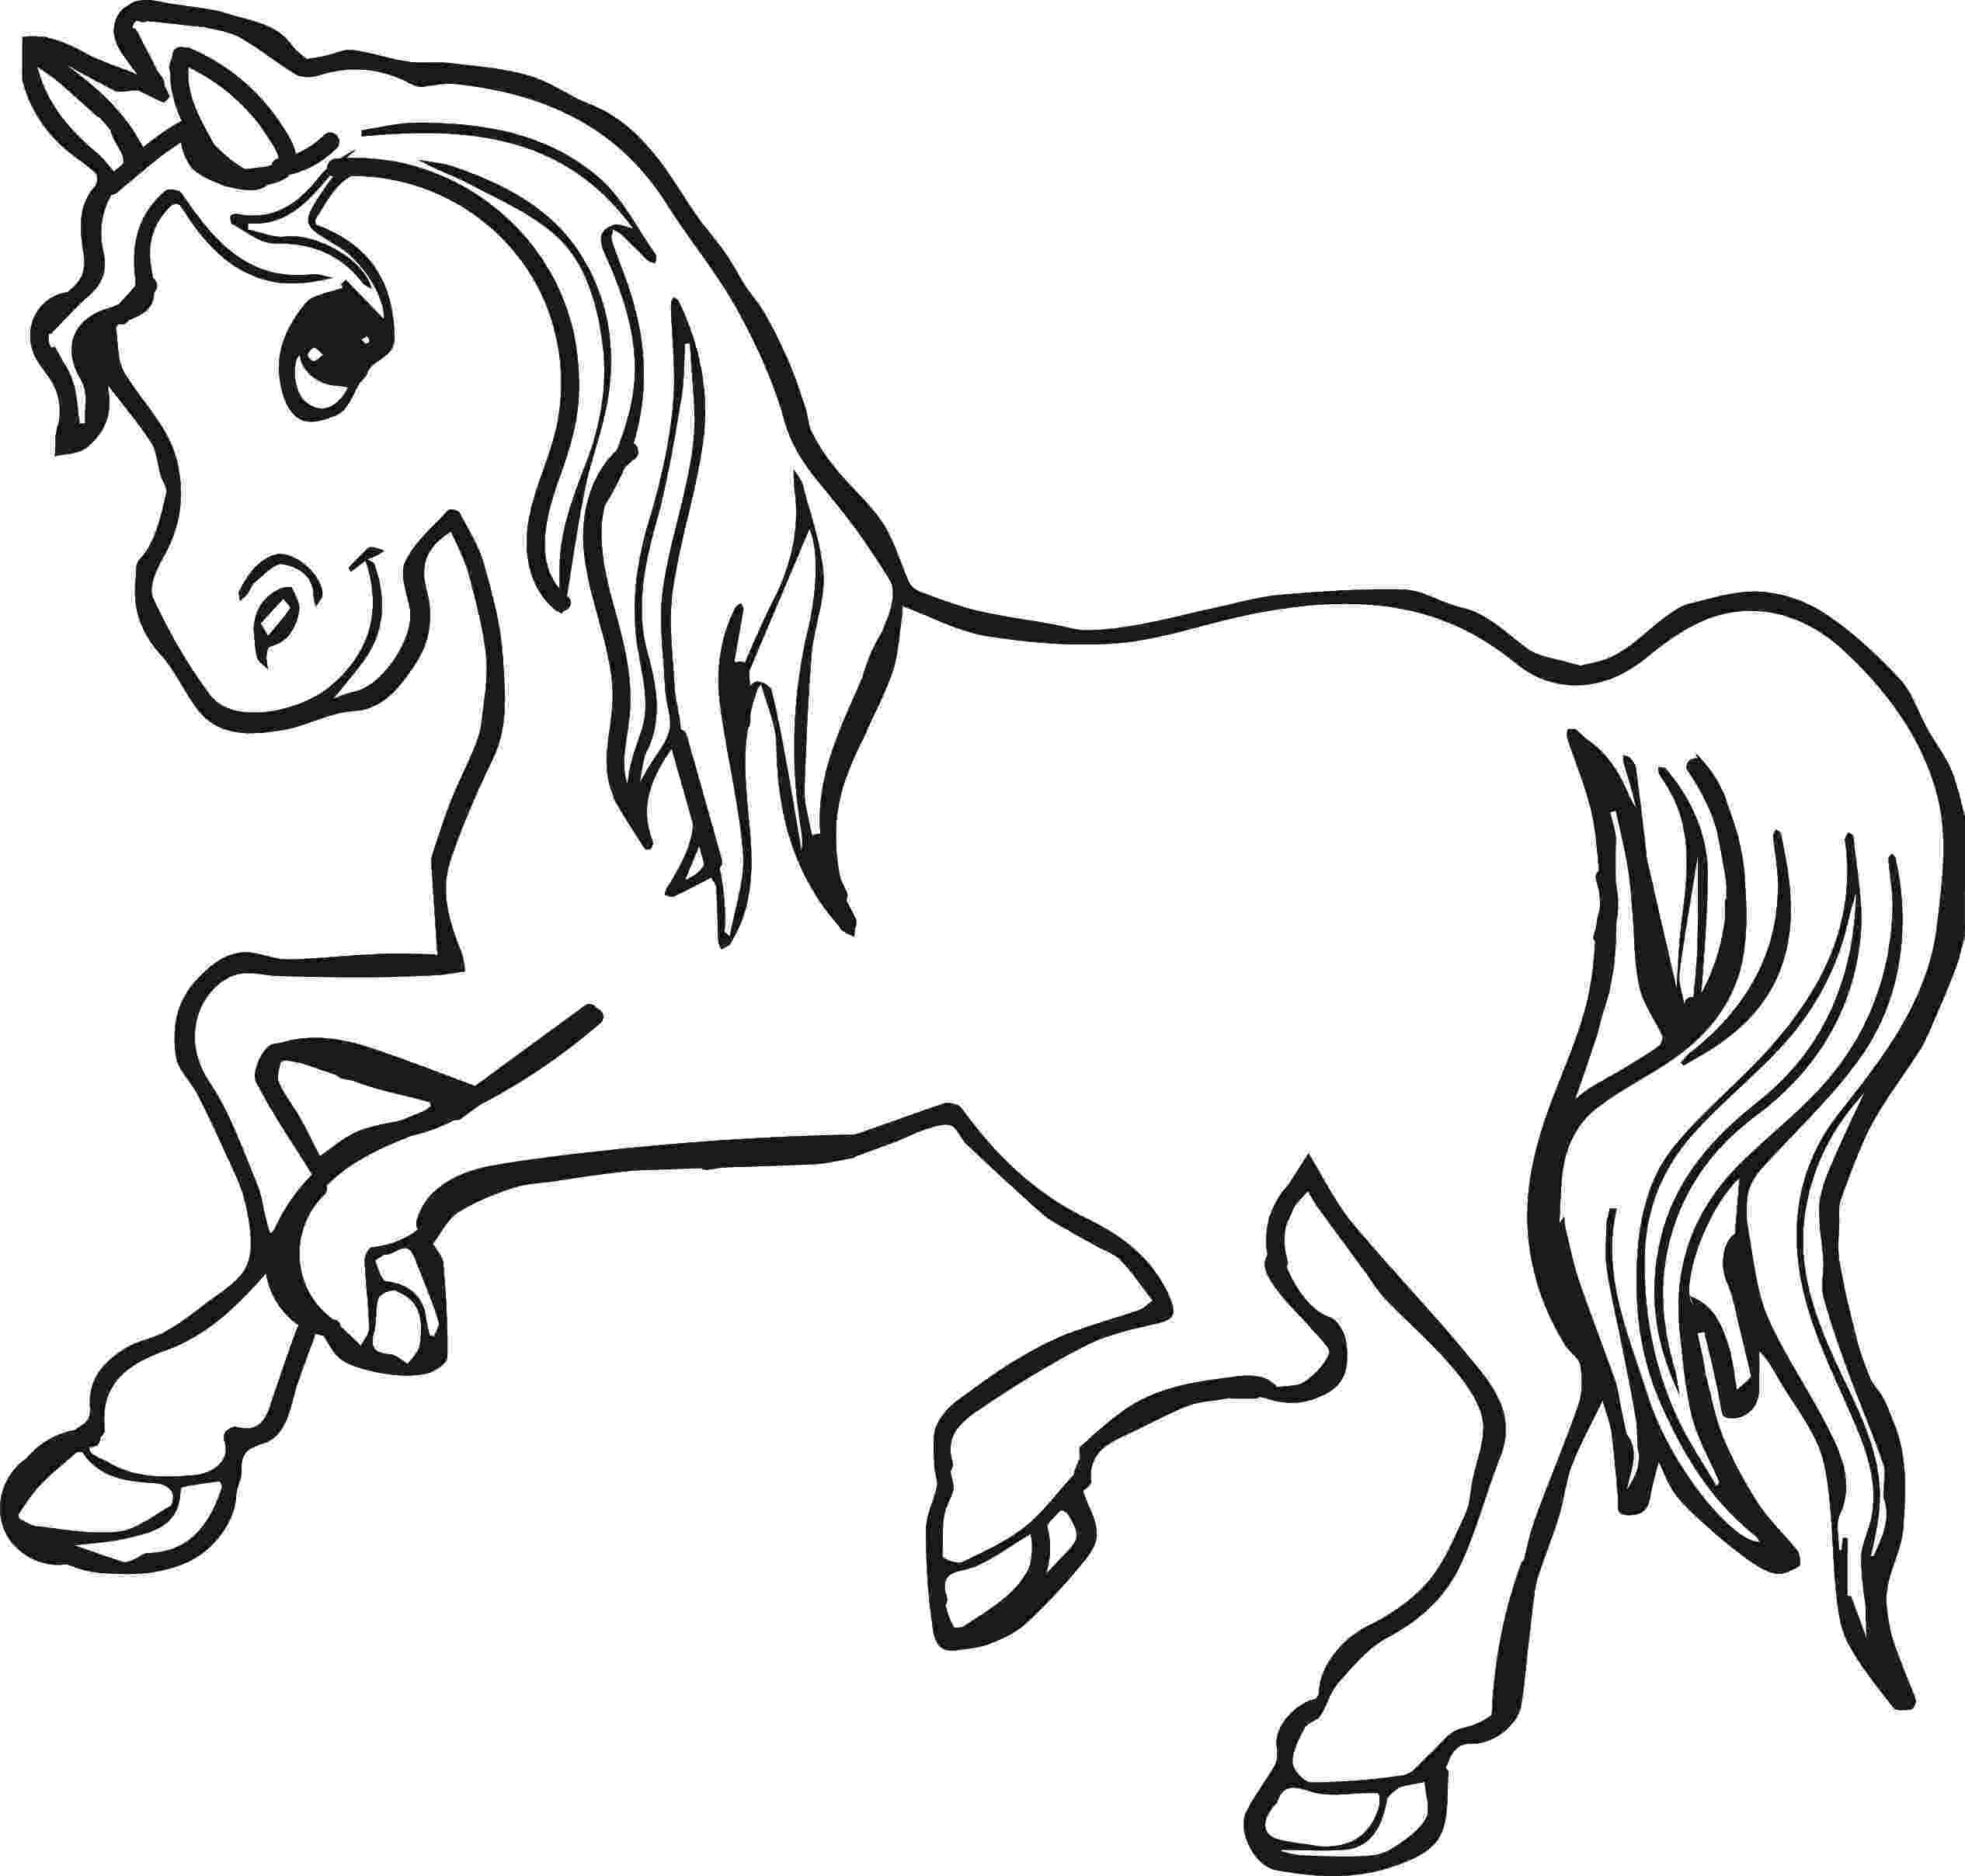 coloring book images of horses free printable horse coloring pages for kids horse book horses images coloring of